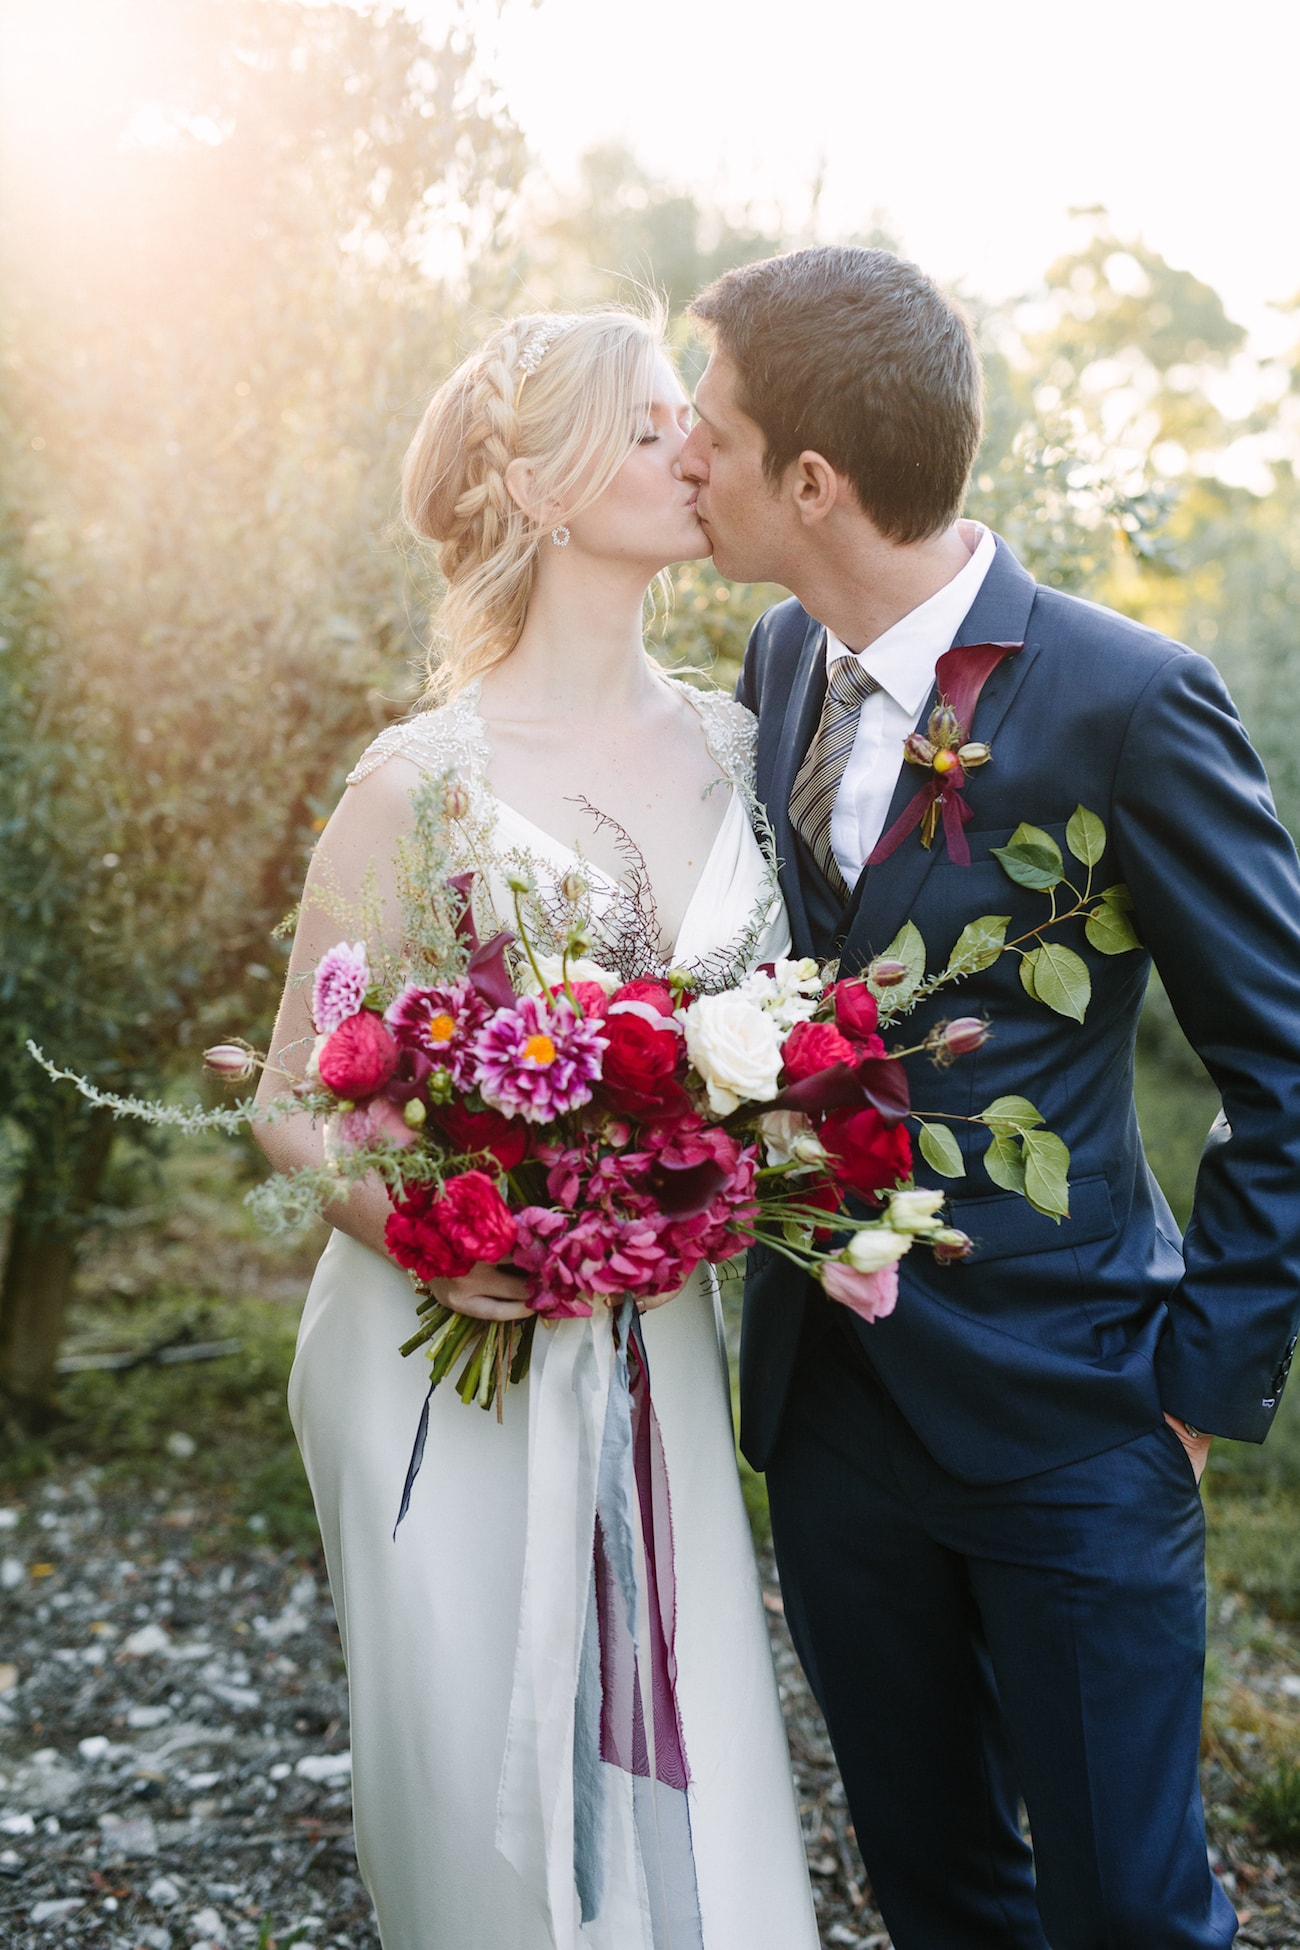 Whimsical Rustic South African Wedding | Image: Tasha Seccombe